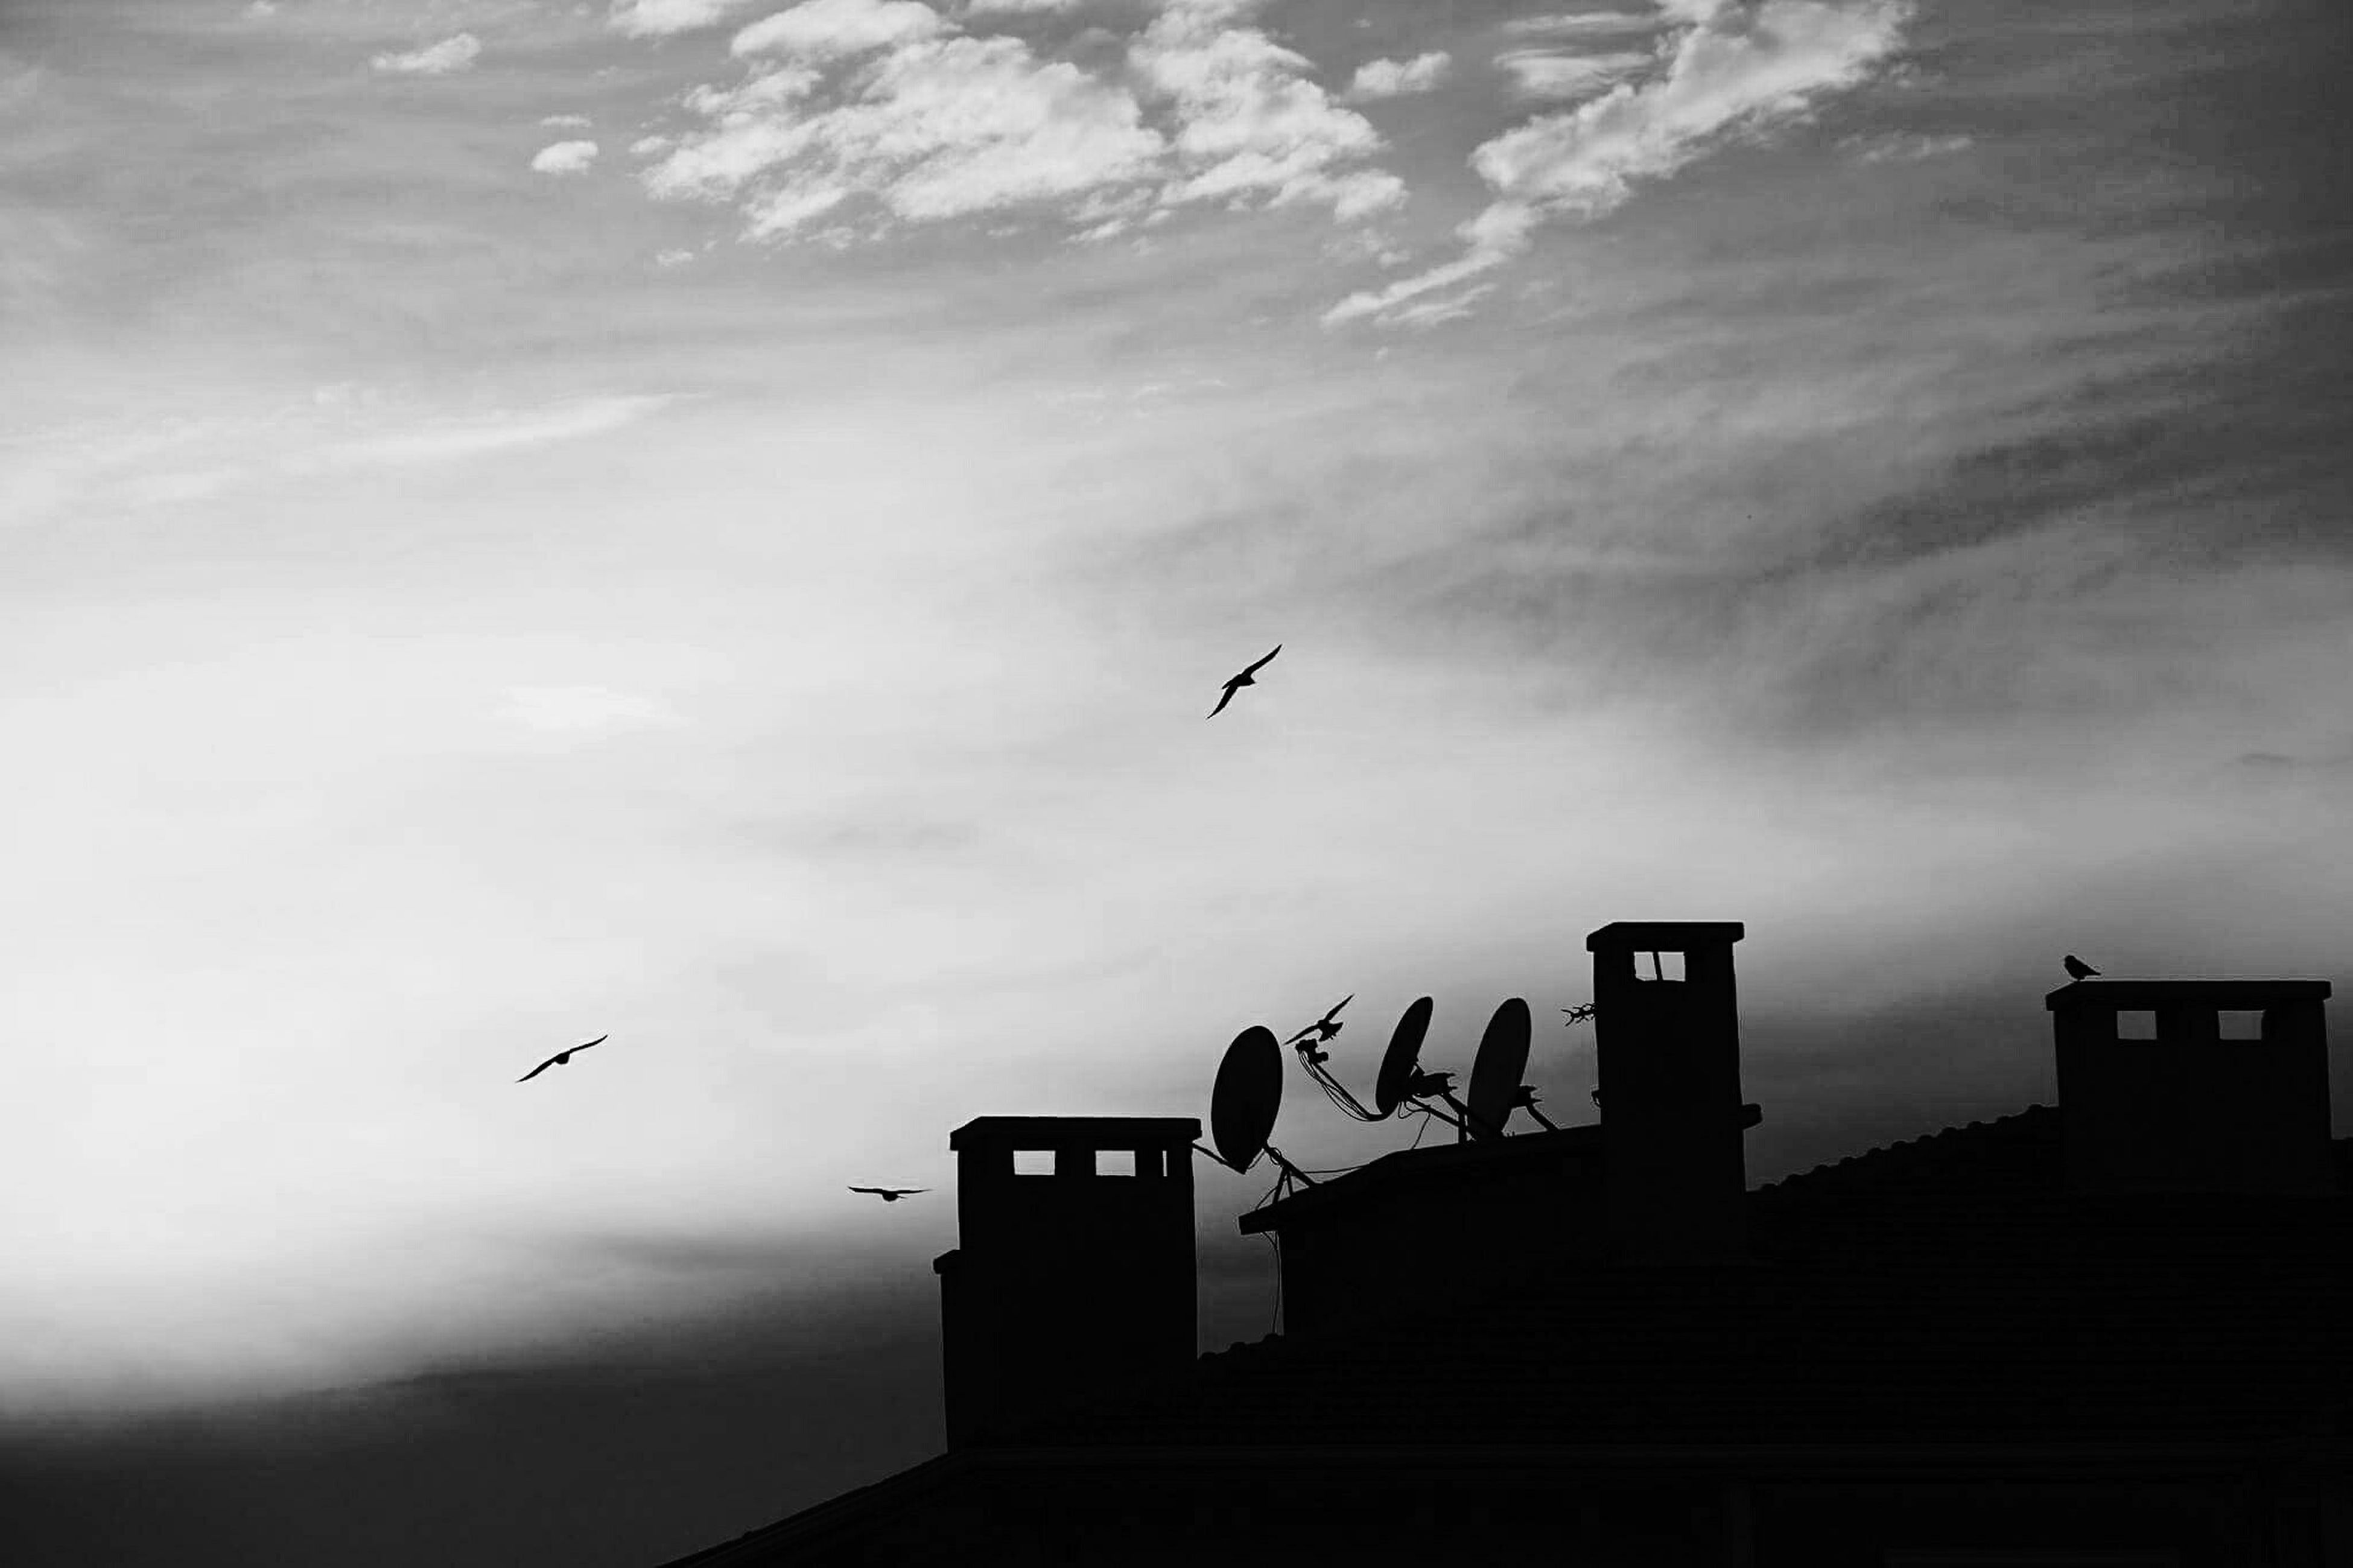 bird, flying, silhouette, low angle view, sky, animal themes, built structure, architecture, building exterior, animals in the wild, cloud - sky, wildlife, cloudy, dusk, cloud, nature, outdoors, mid-air, sunset